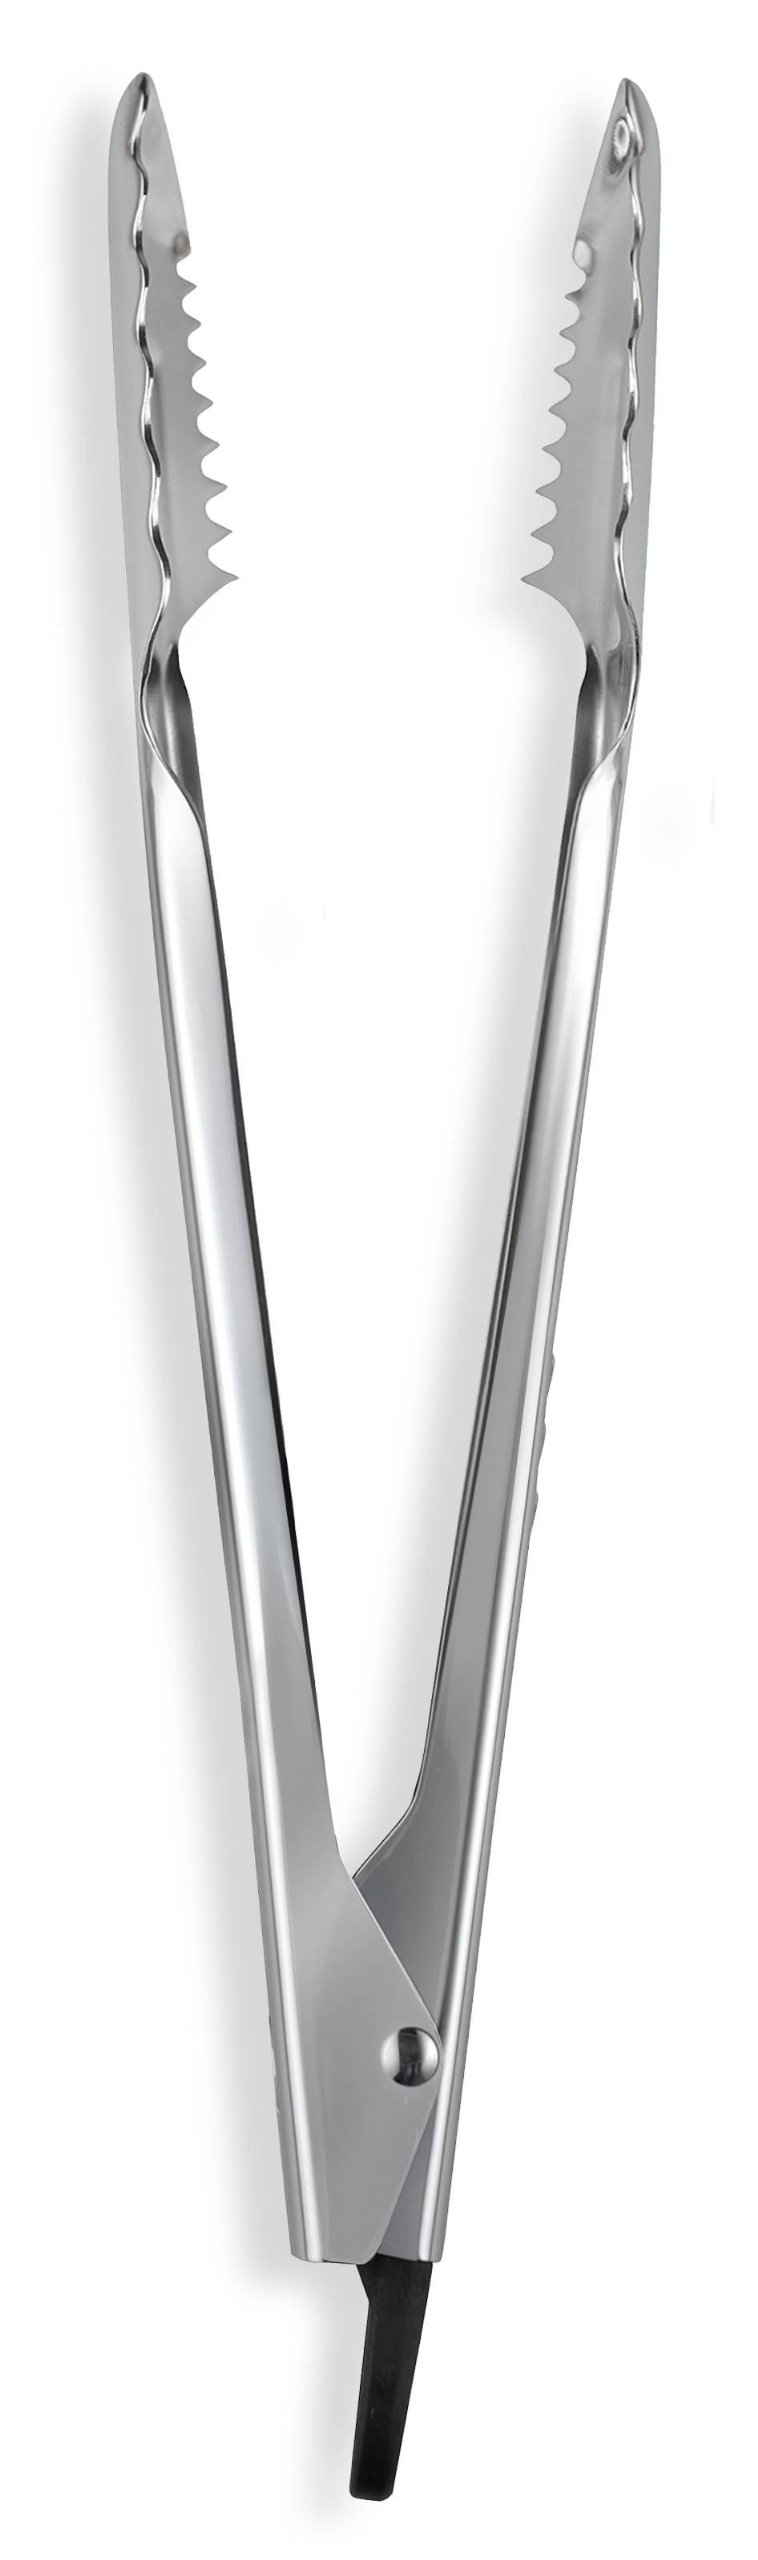 iSi Basics 12-Inch Pro Tongs, Polished Stainless Steel